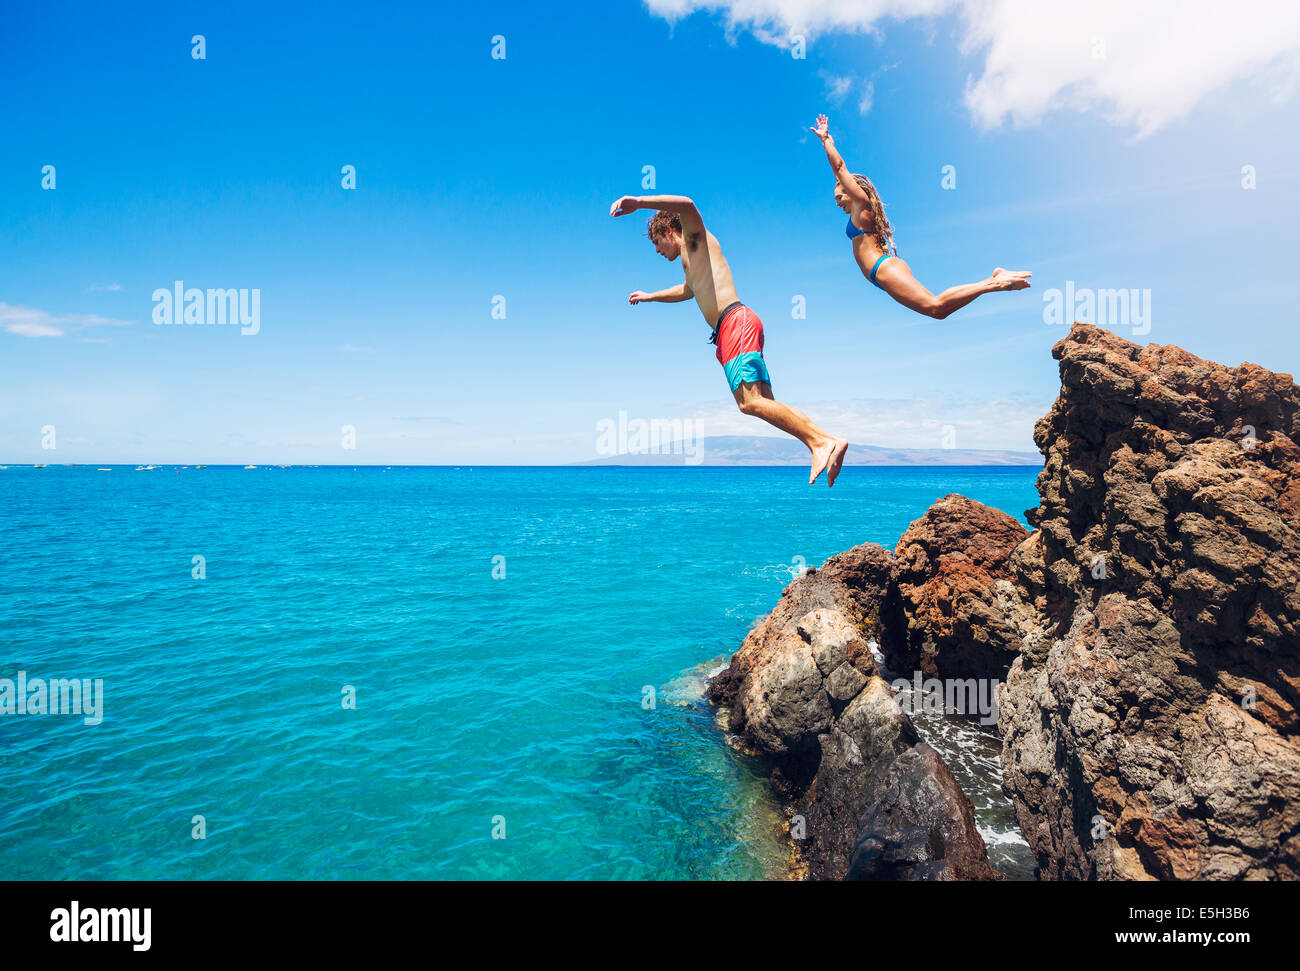 Friends cliff jumping into the ocean, summer fun lifestyle. - Stock Image